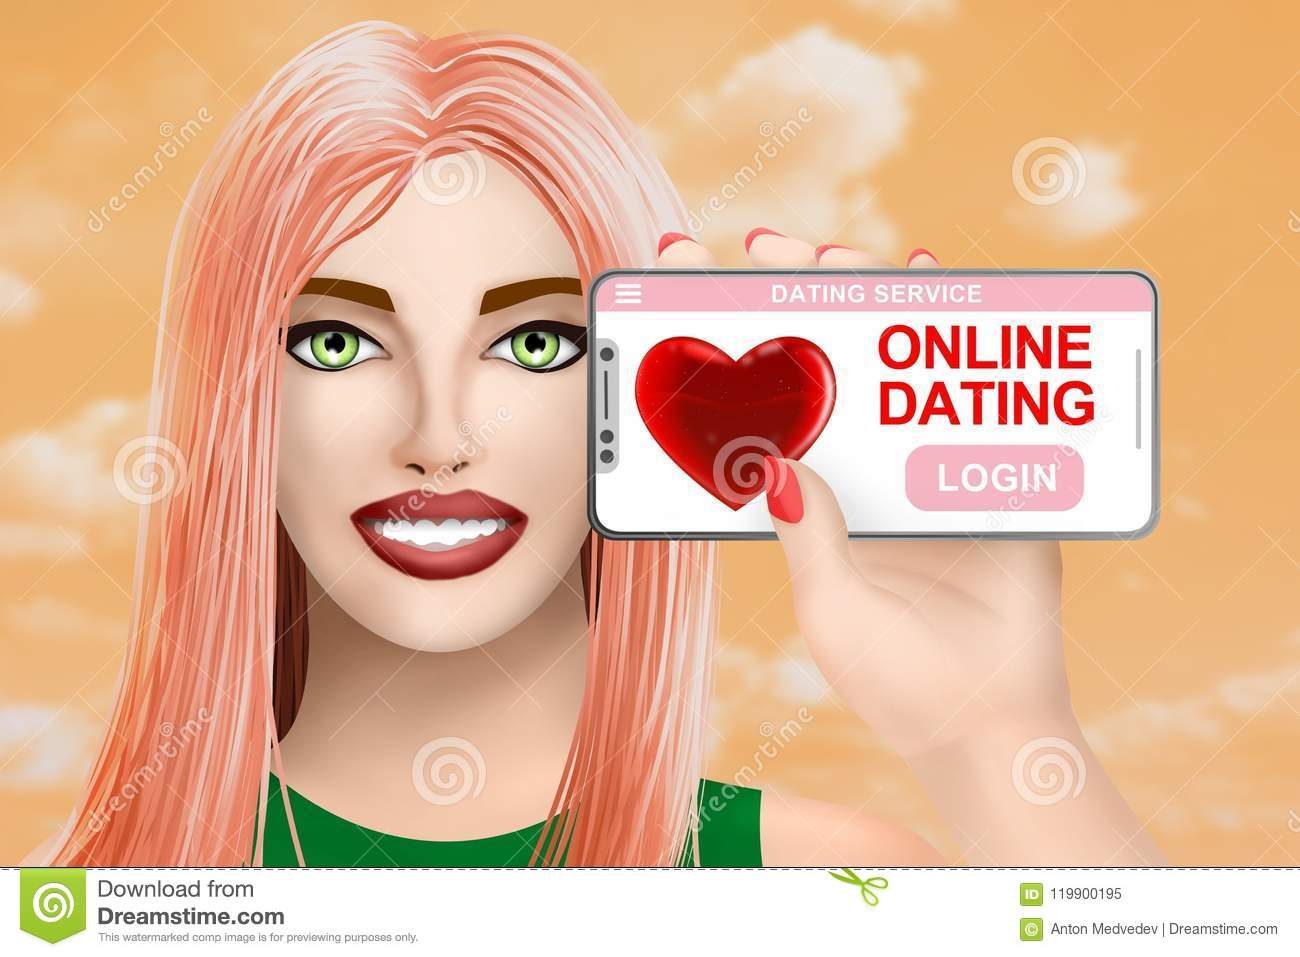 Online dating bagus